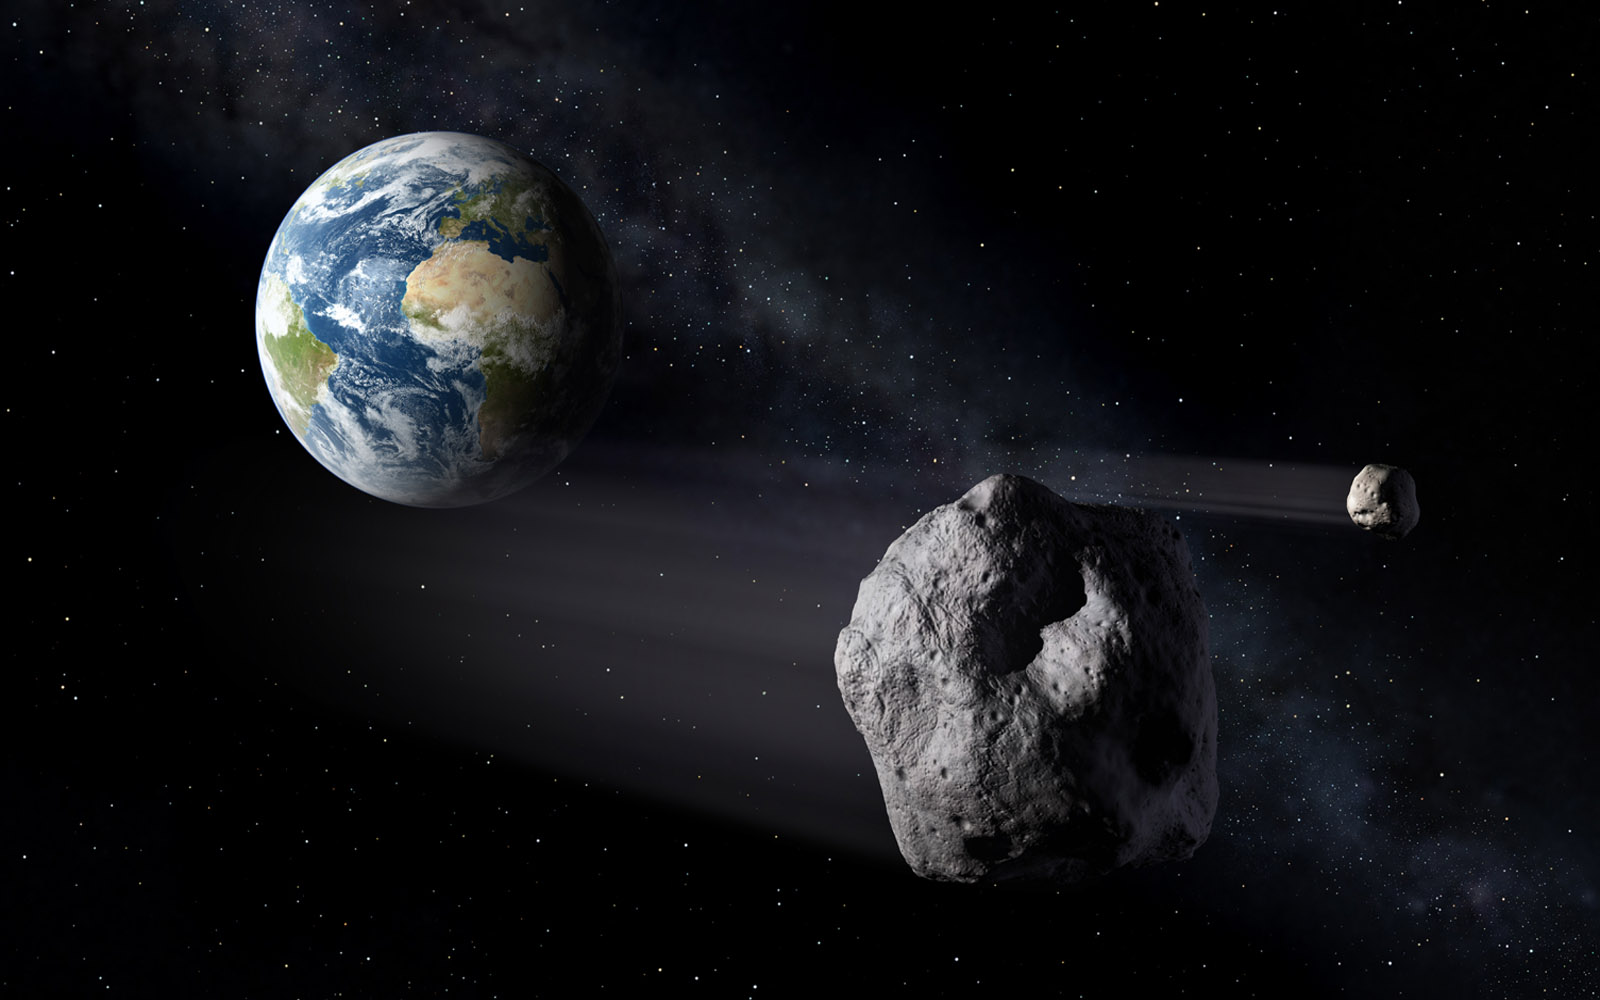 asteroids 29281